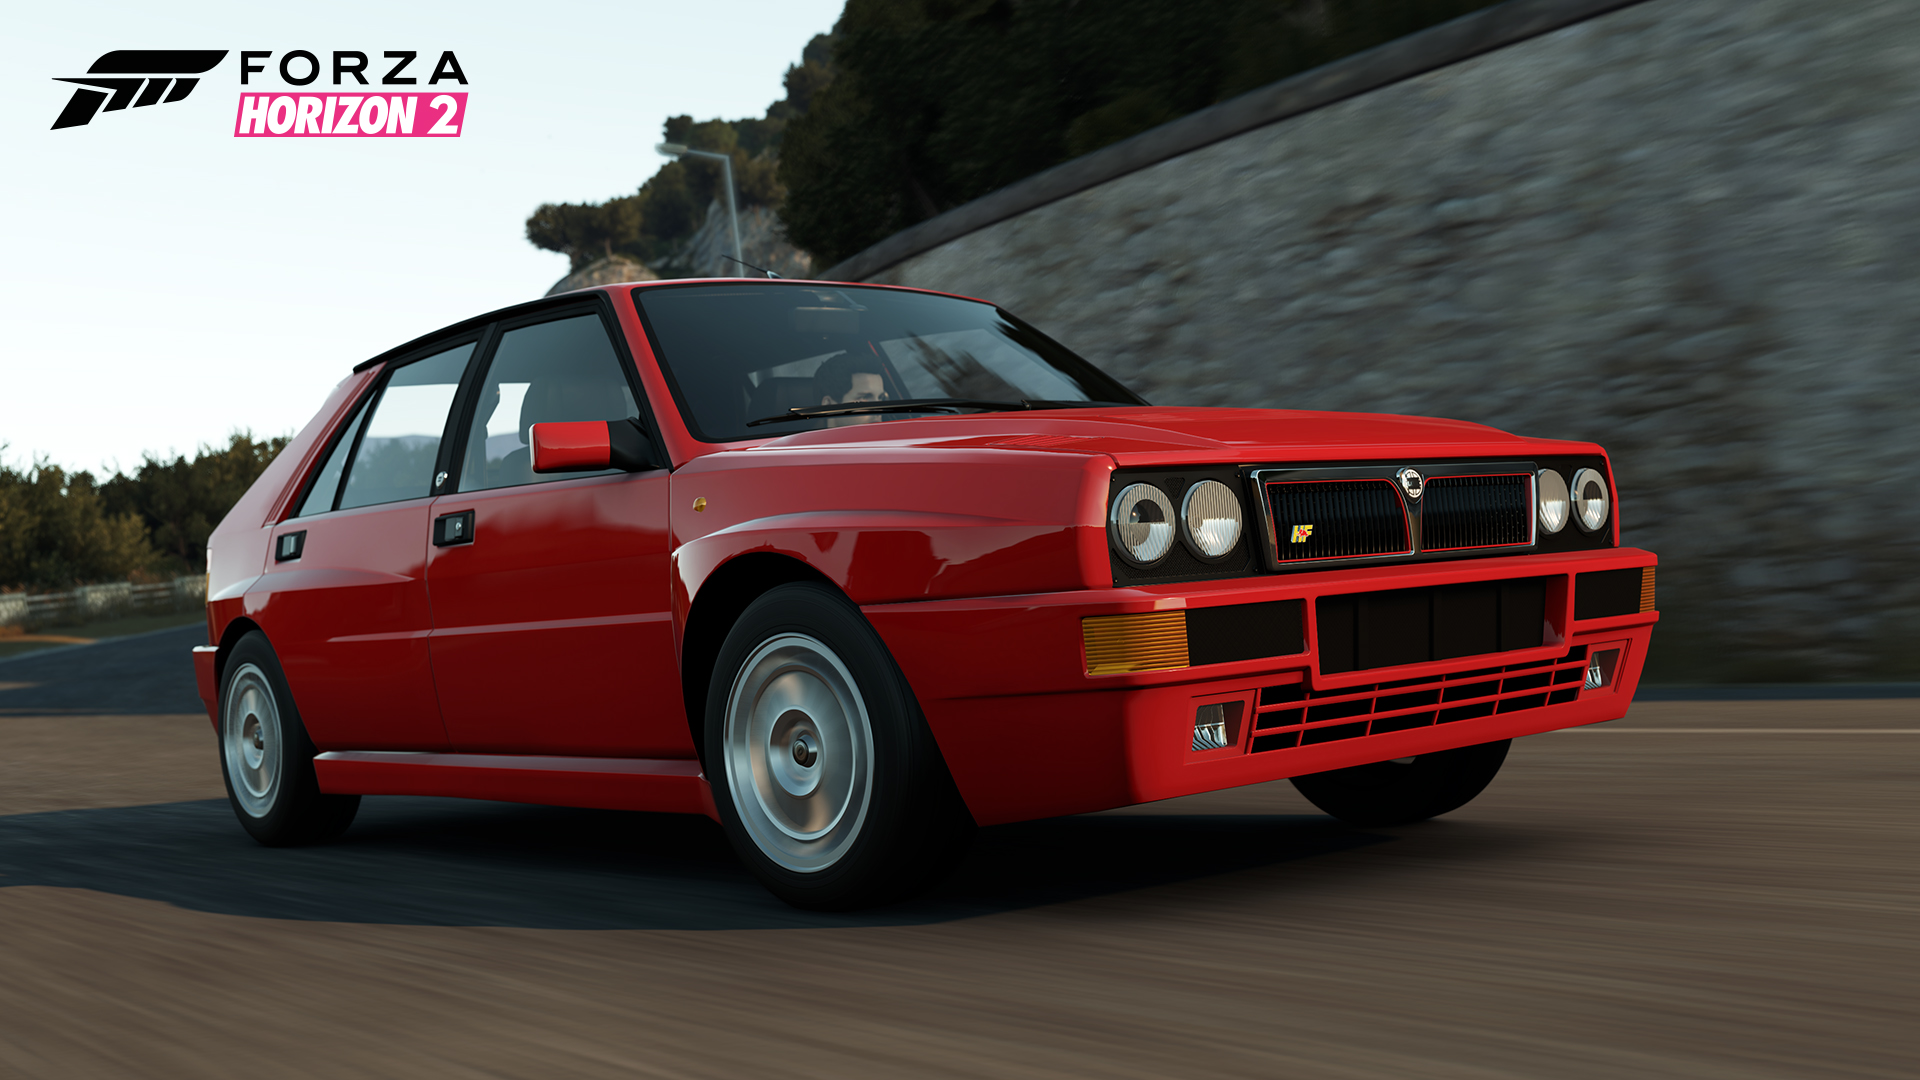 LanciaDelta_WM_CarReveal_Week3_ForzaHorizon2